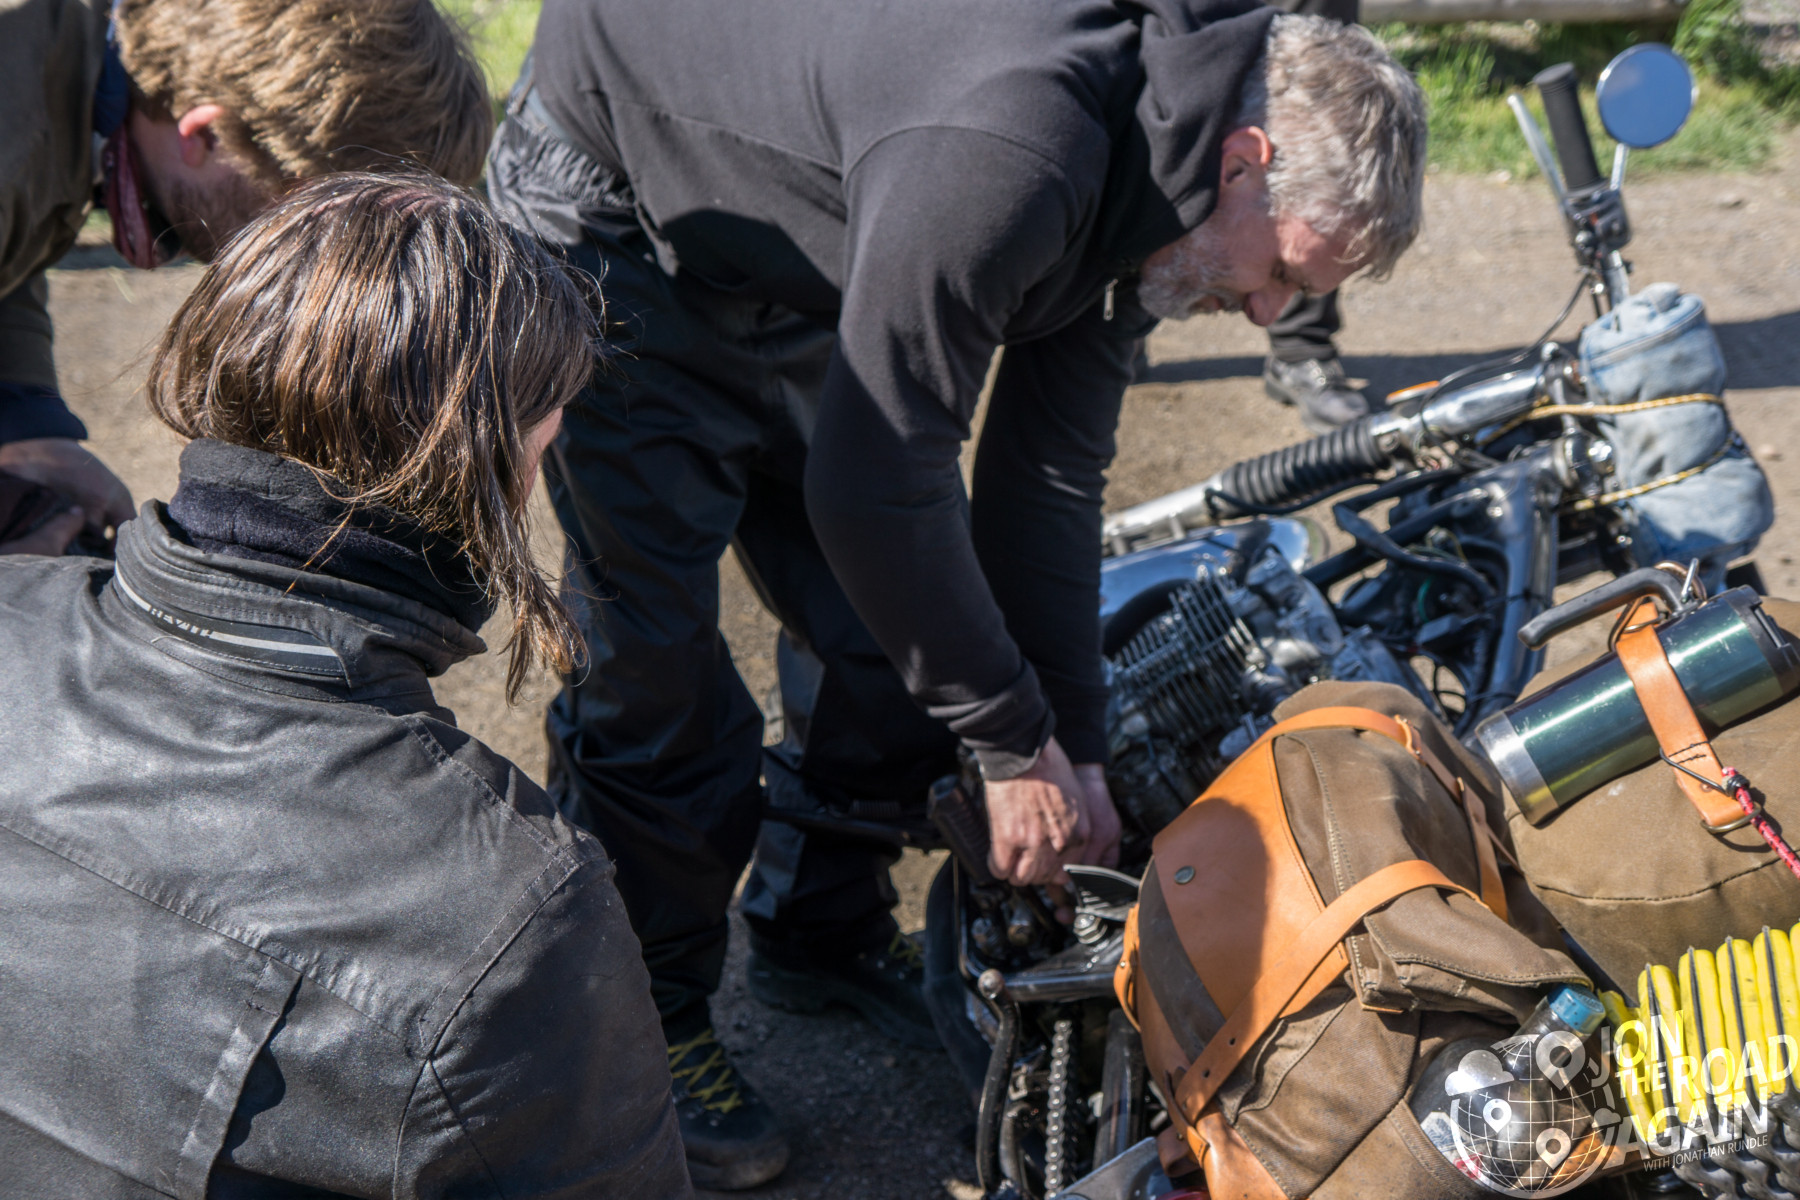 Roadside motorcycle fix